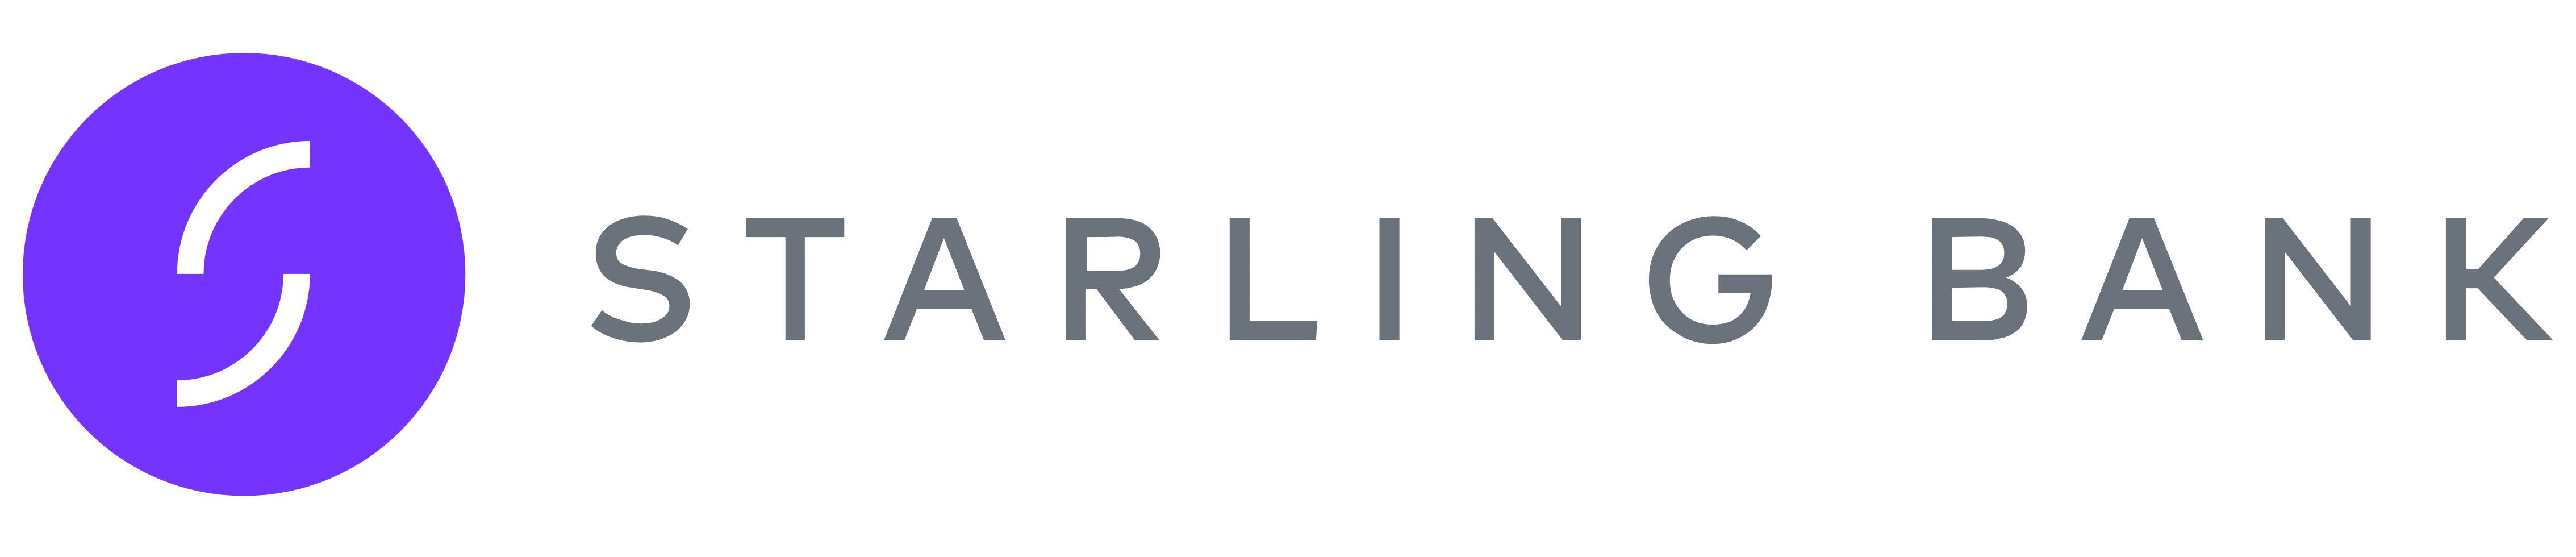 Starling Bank Teams Up with Current Account Switch Service